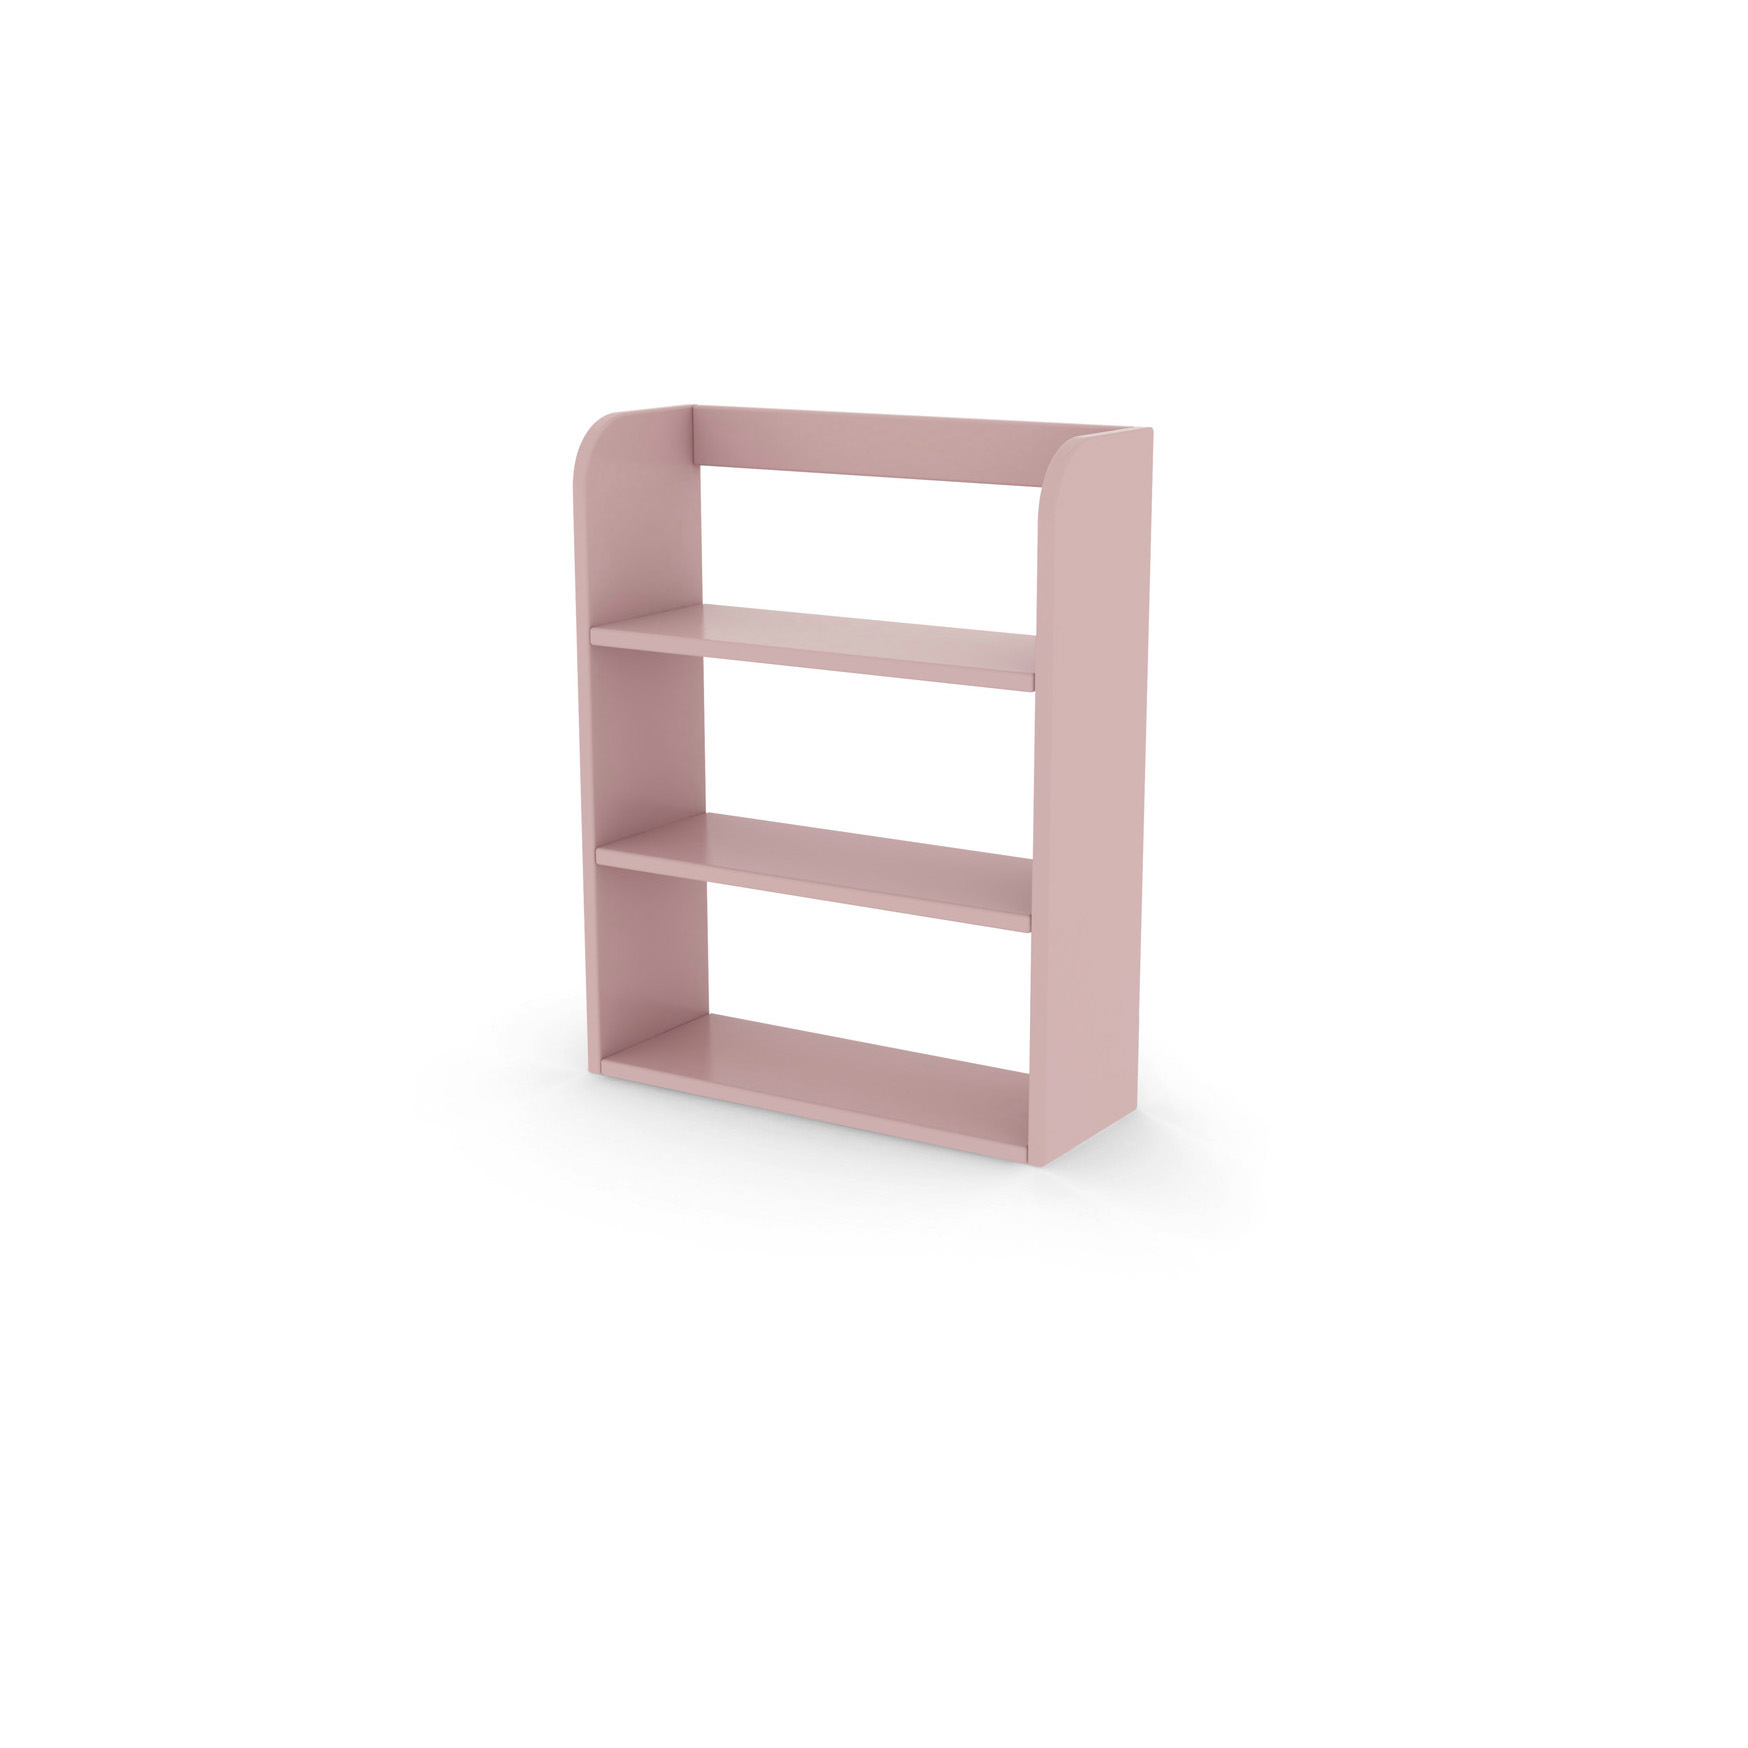 Flexa Play -Shelf Made - Rose at FADS.co.uk